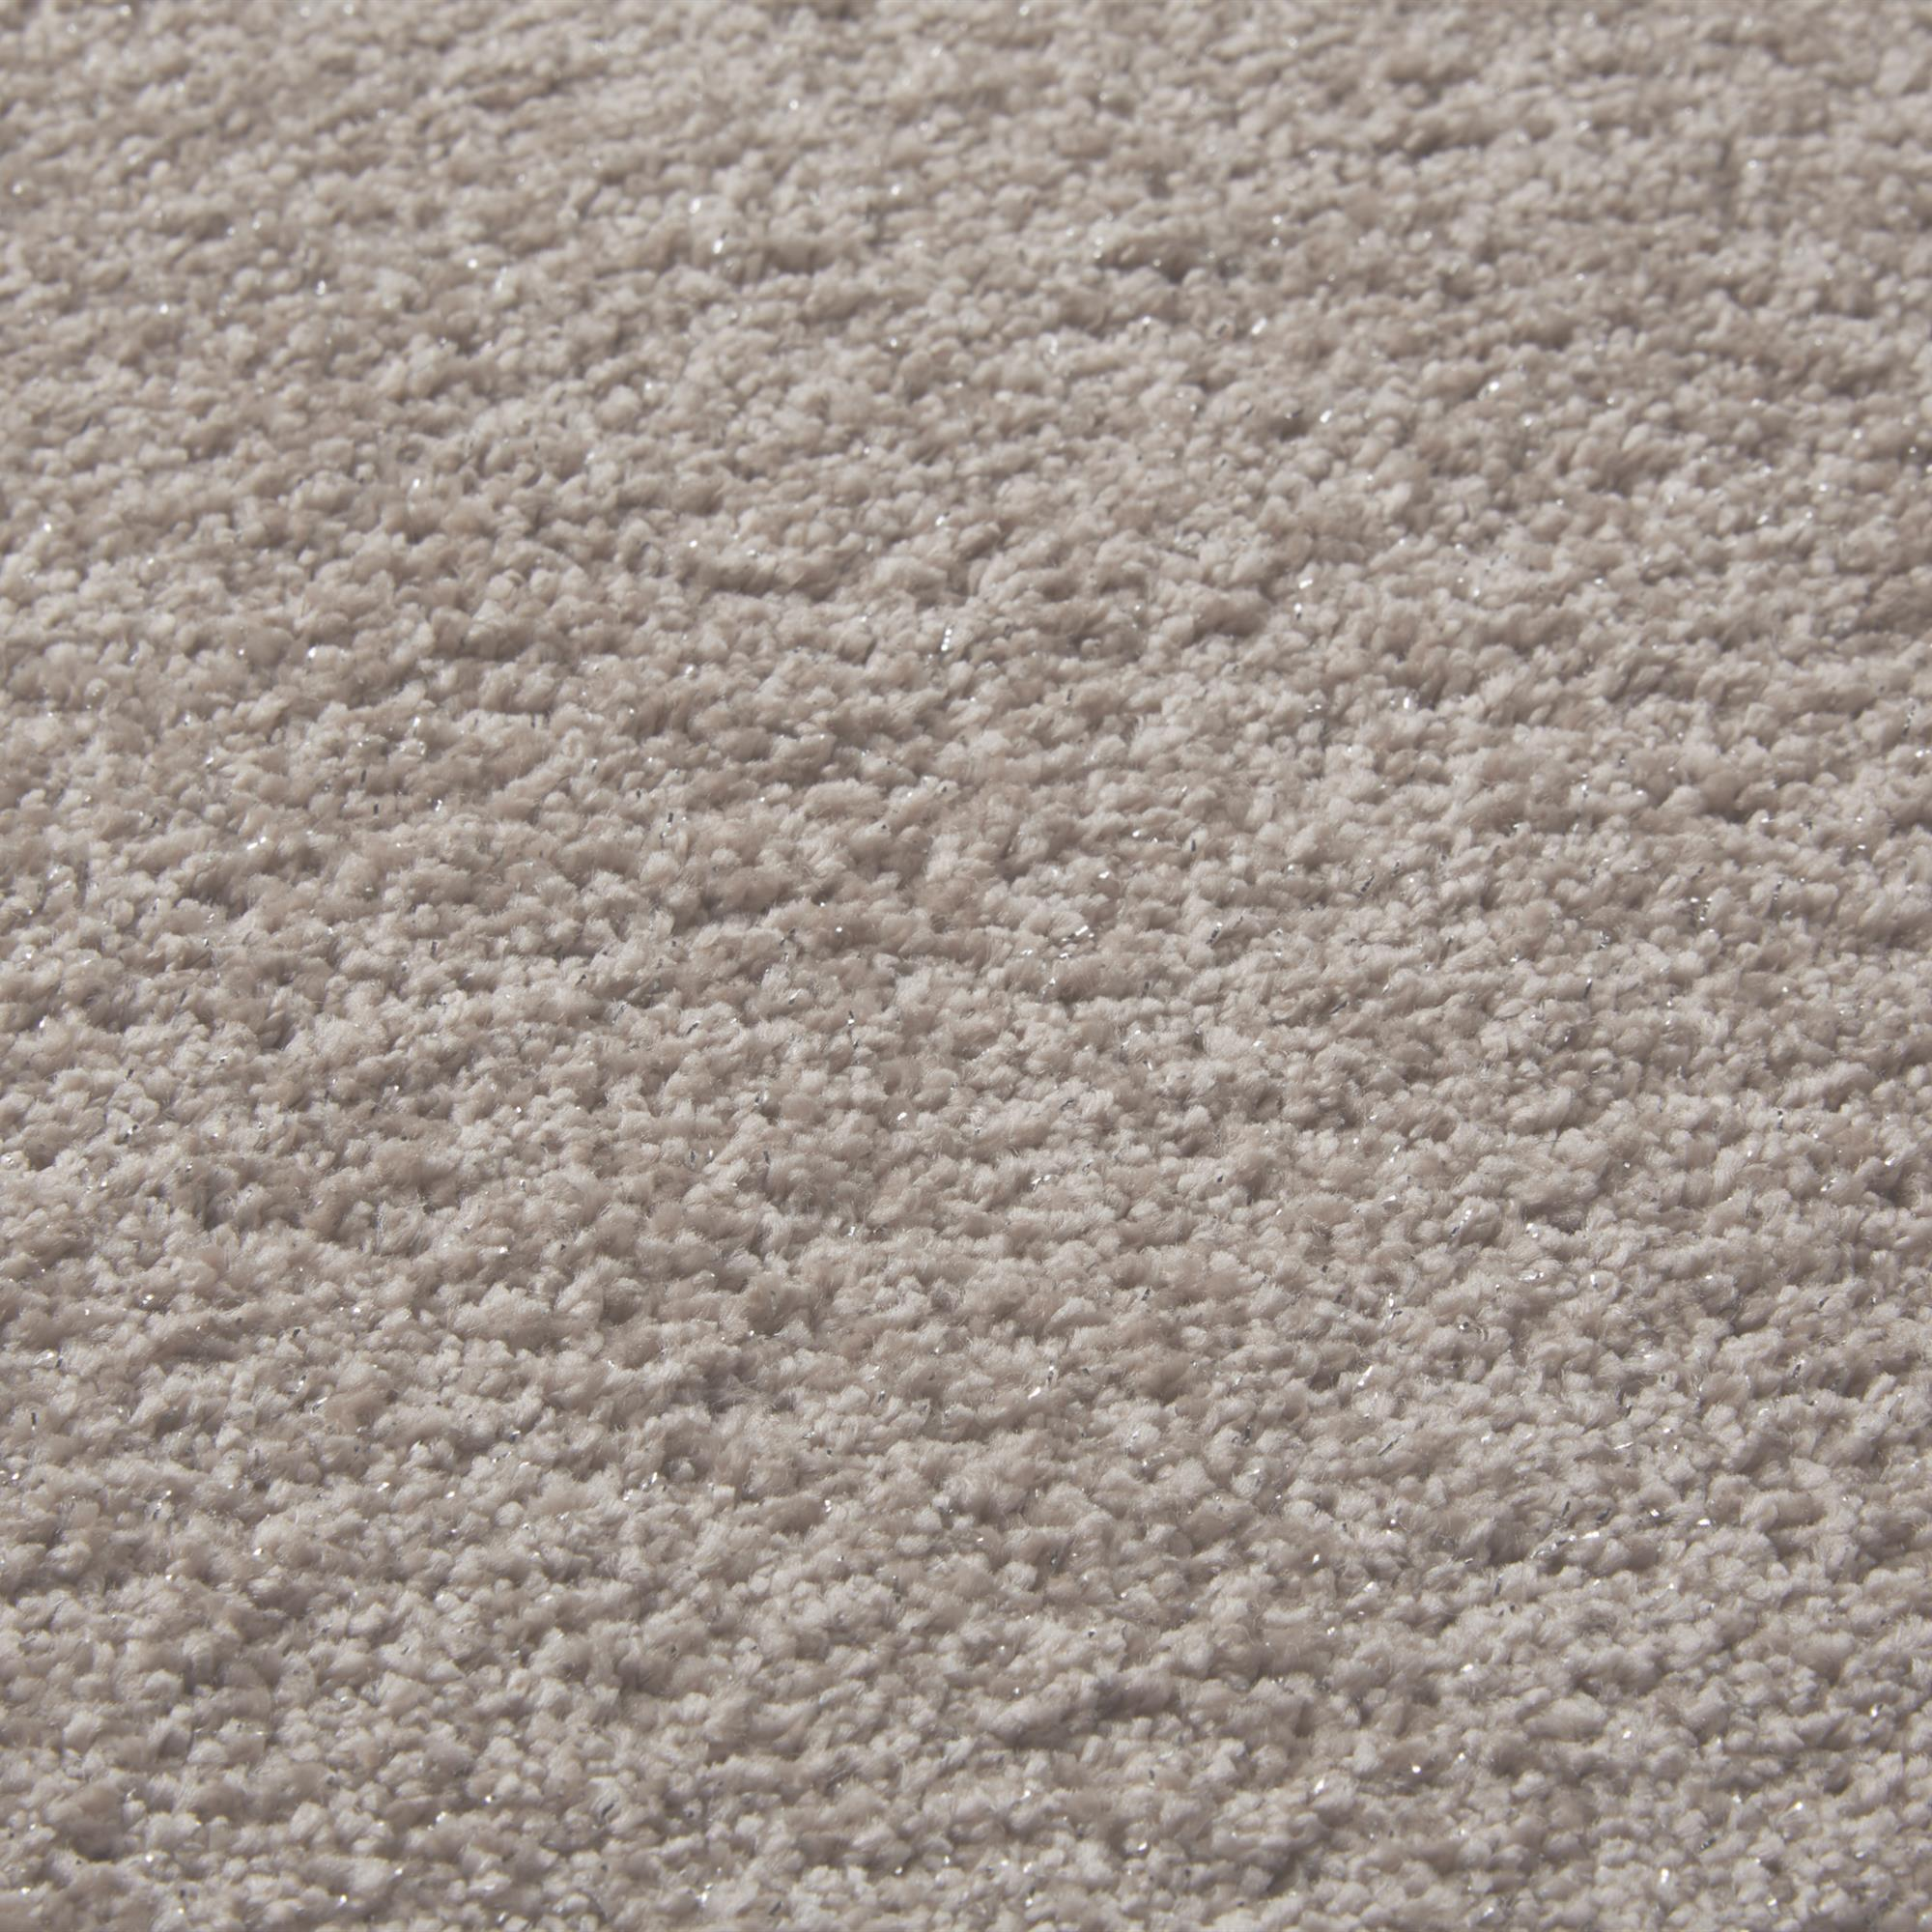 Associated Weavers Proxima Carpet, 33 Vanilla, swatch